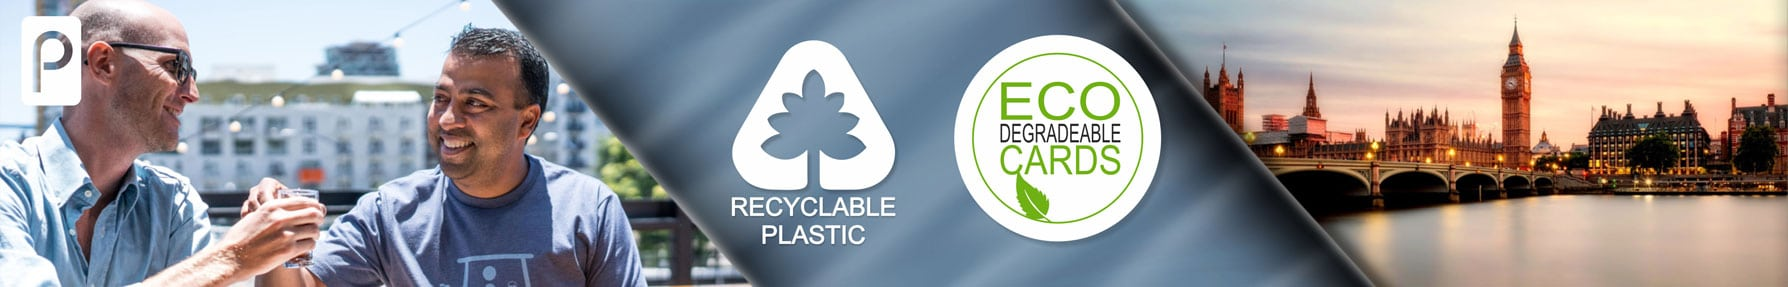 Business Cards eco friendly and recyclable from Premier Plastic cards